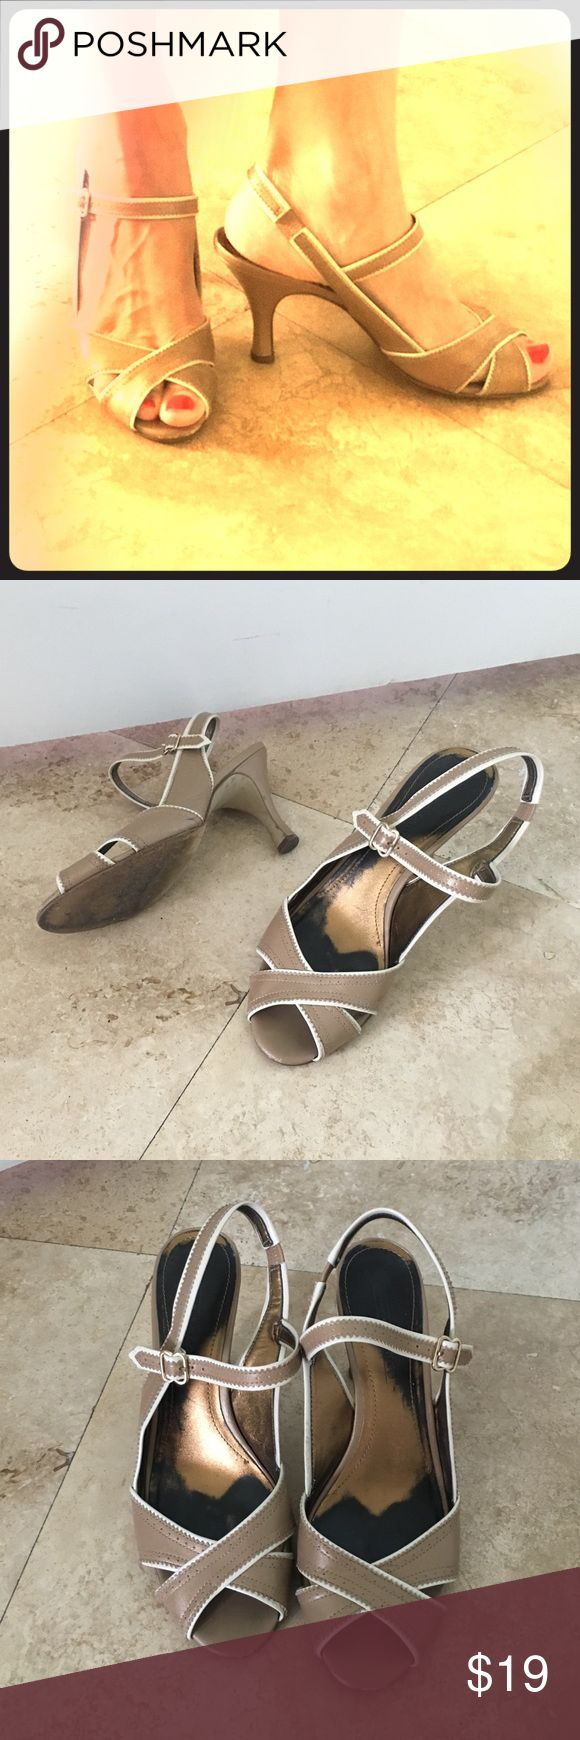 Joan & David Nude Mary Jane Sandals Heels Circa Joan & David Nude Mary Jane Sandals Heels. Very unique, feminine and stylish shoe. Some wear on heels, and insole, but not detectable while wearing. Joan & David Shoes Heels